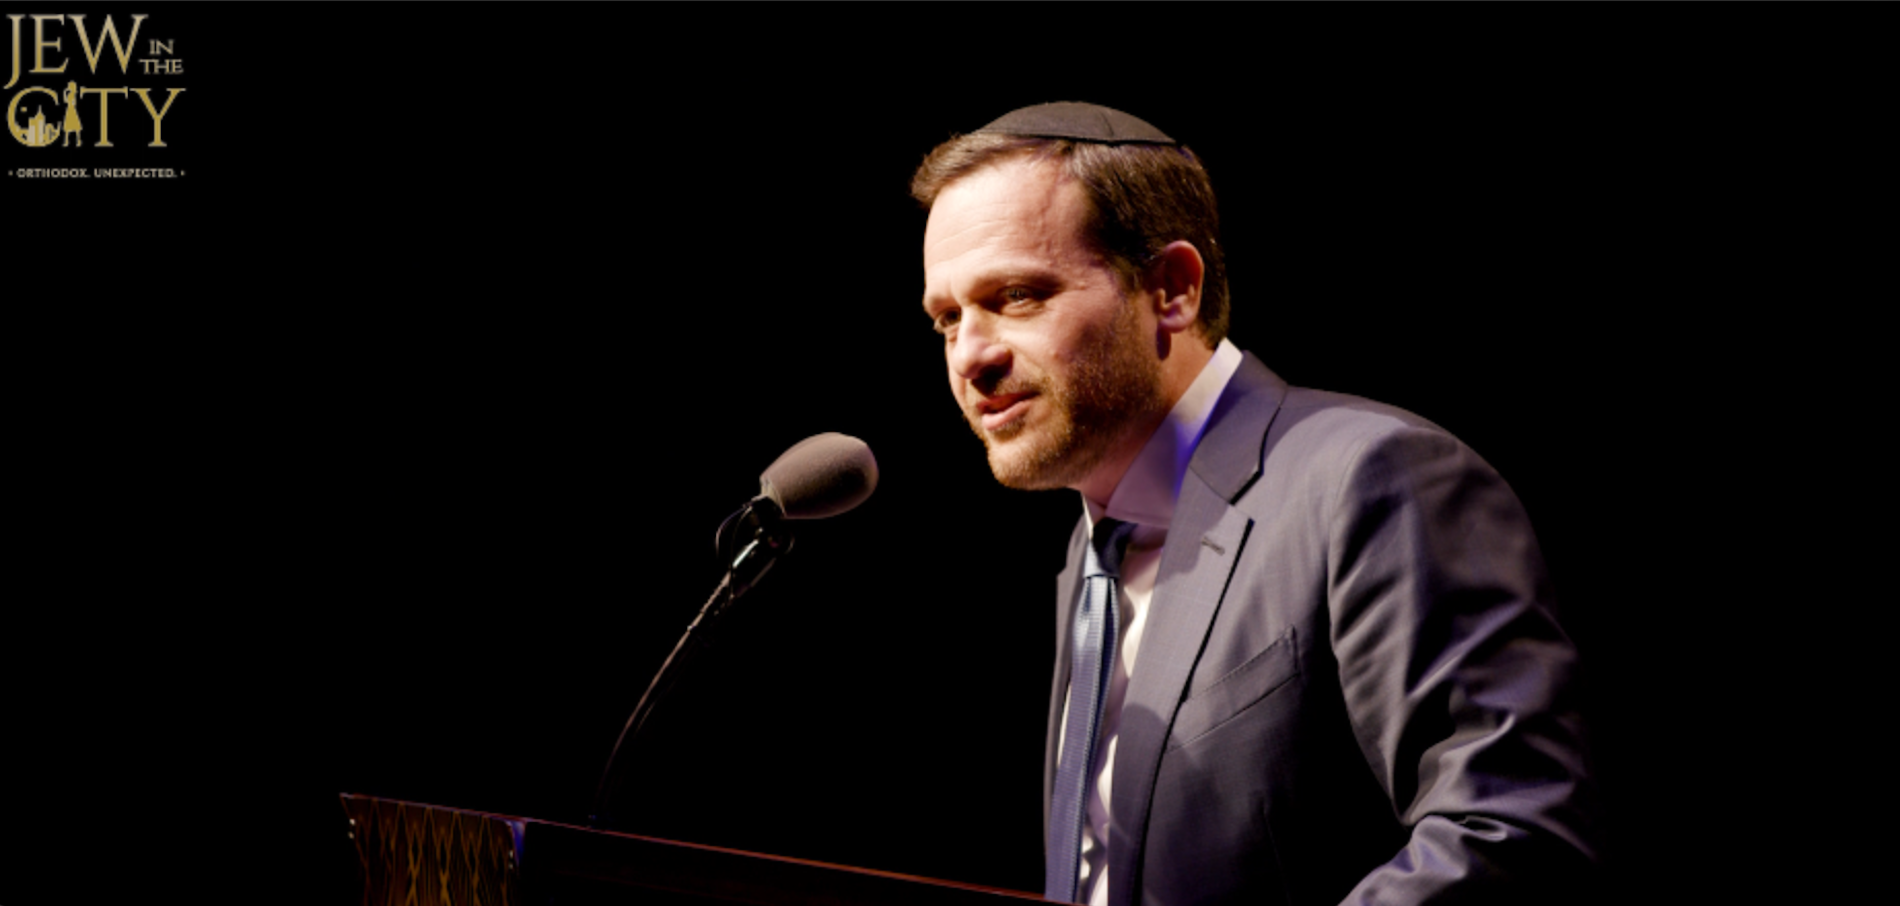 CTO of Open Table, Joseph Essas, Accepts Orthodox Jewish All Star Award